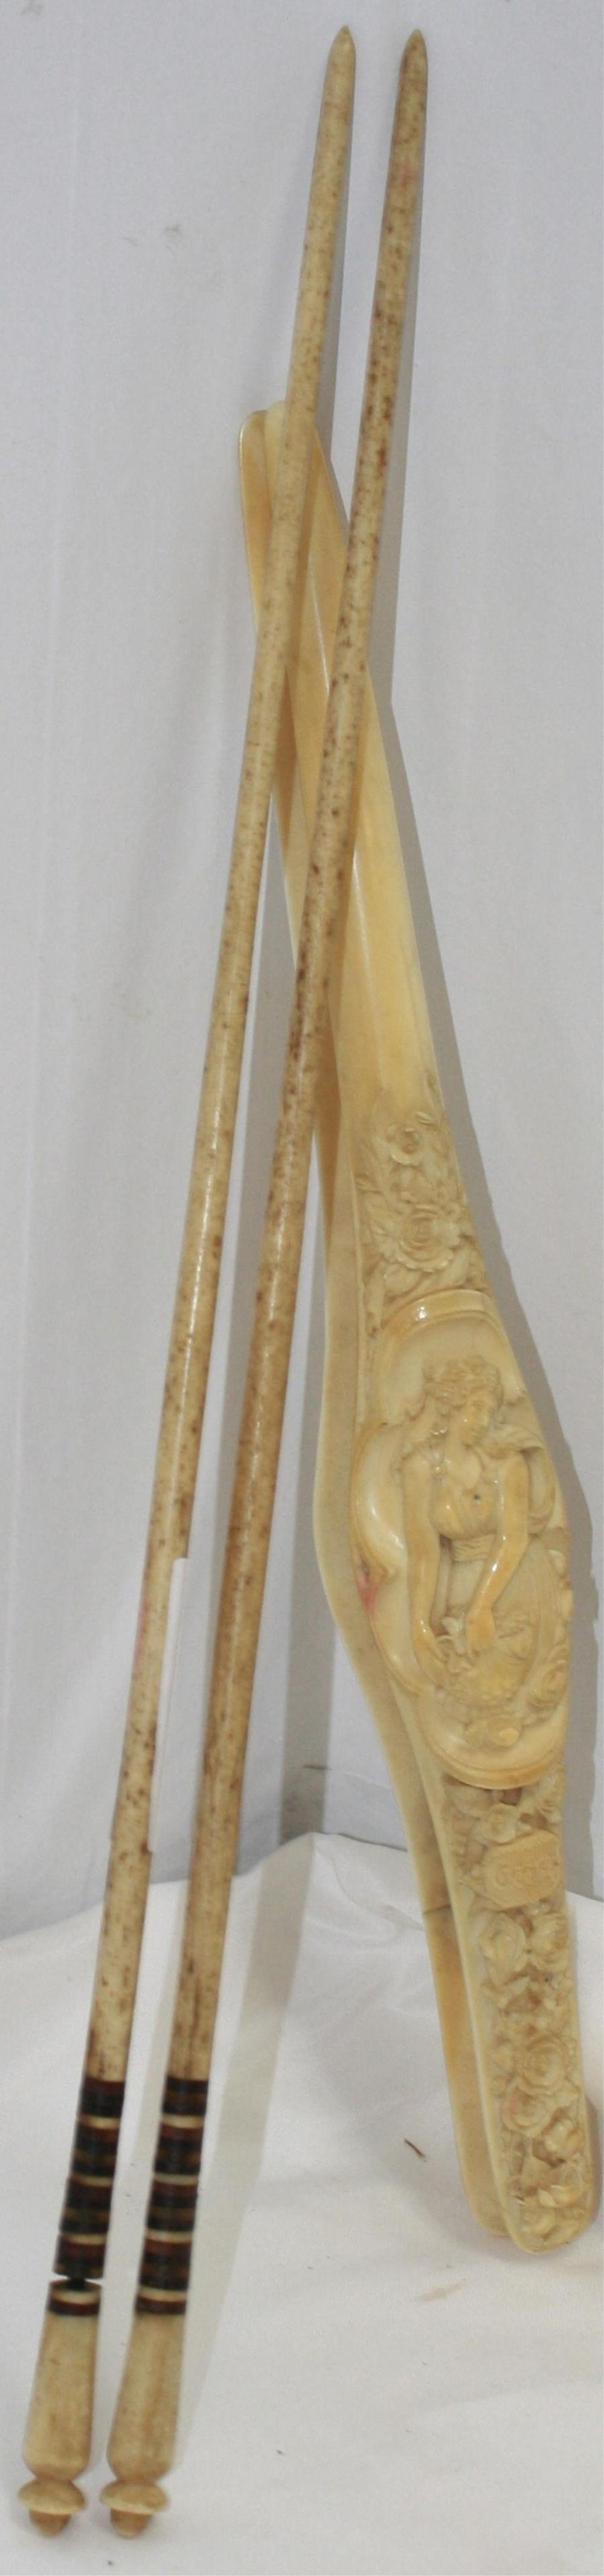 TWO 19TH CENTURY BONE ITEMS, TO INCLUDE: